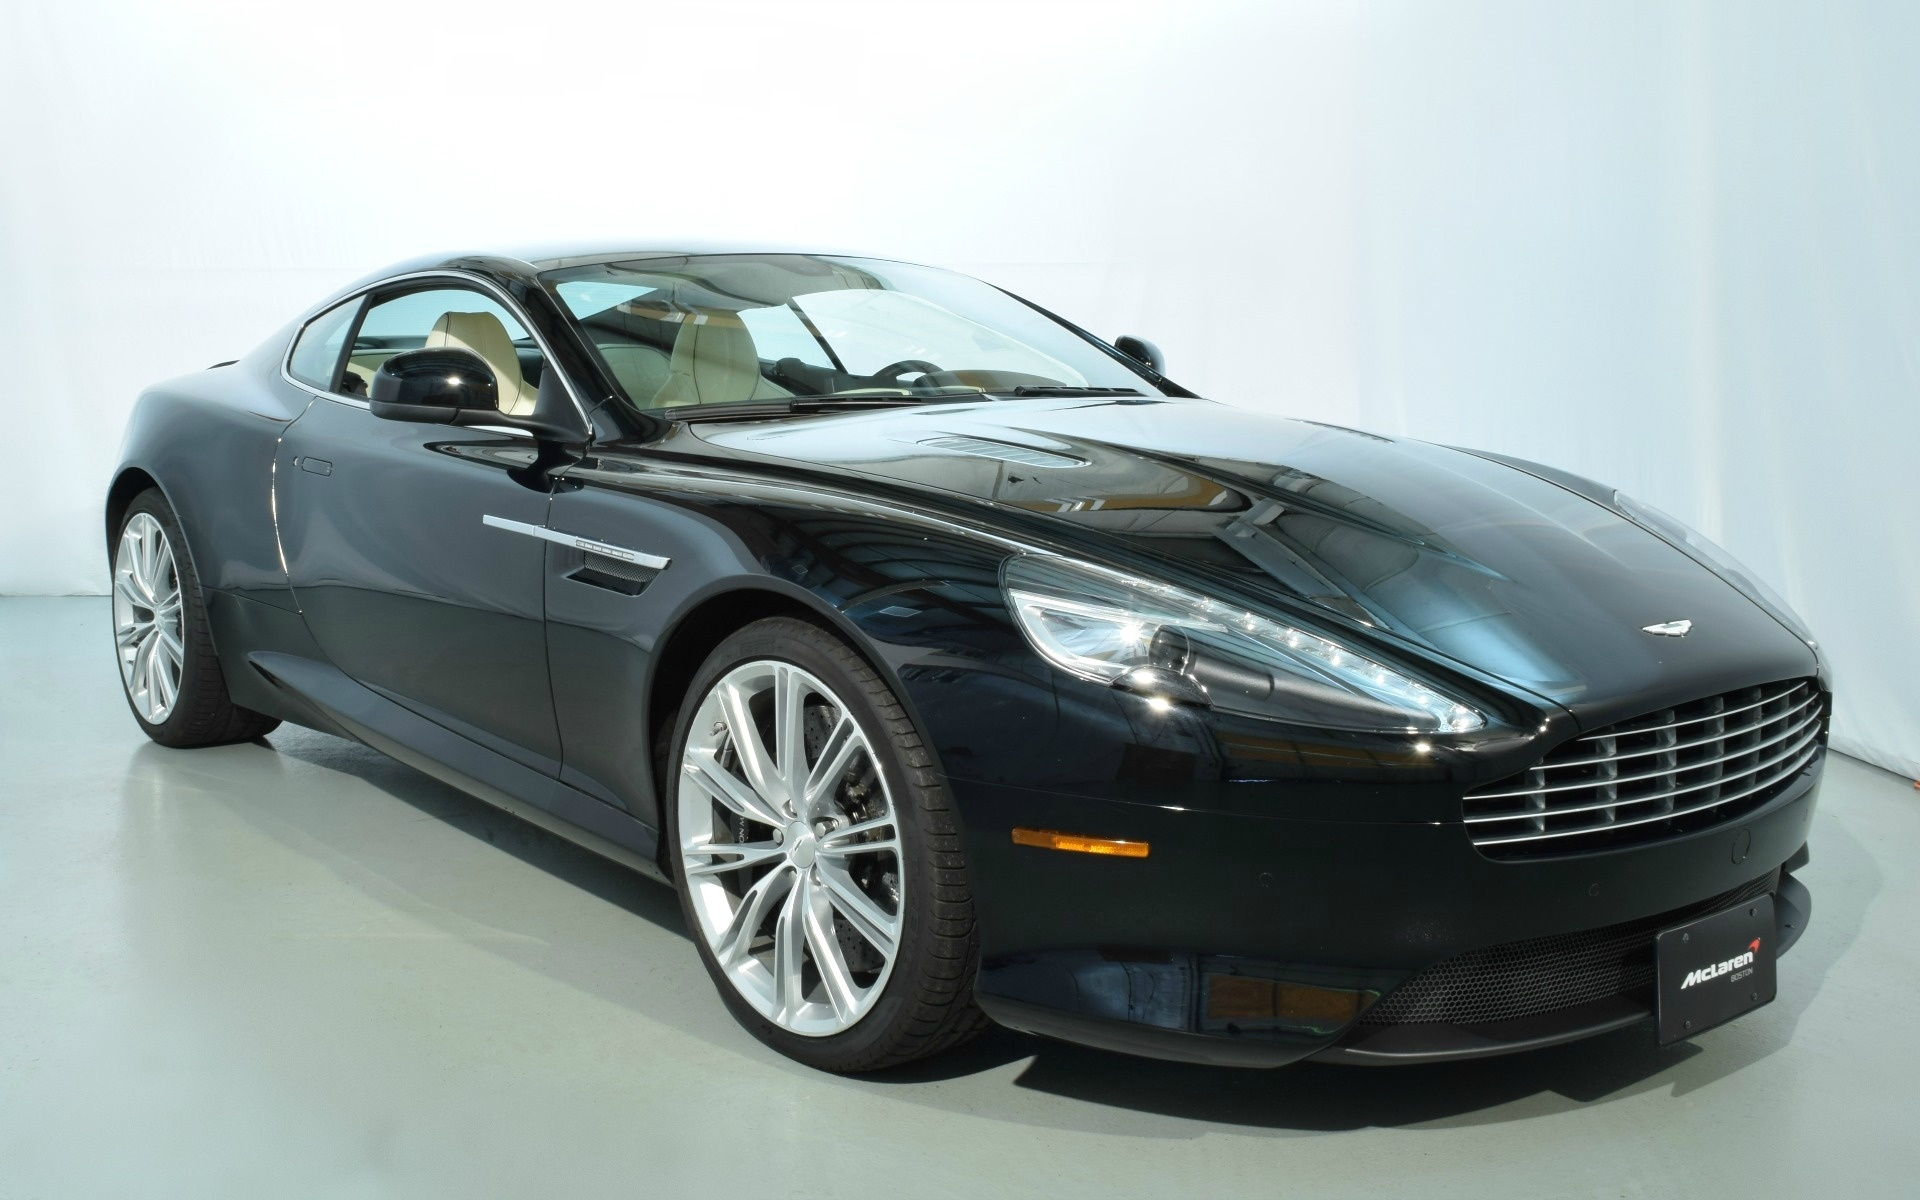 2013 aston martin db9 for sale in norwell ma a14745. Black Bedroom Furniture Sets. Home Design Ideas